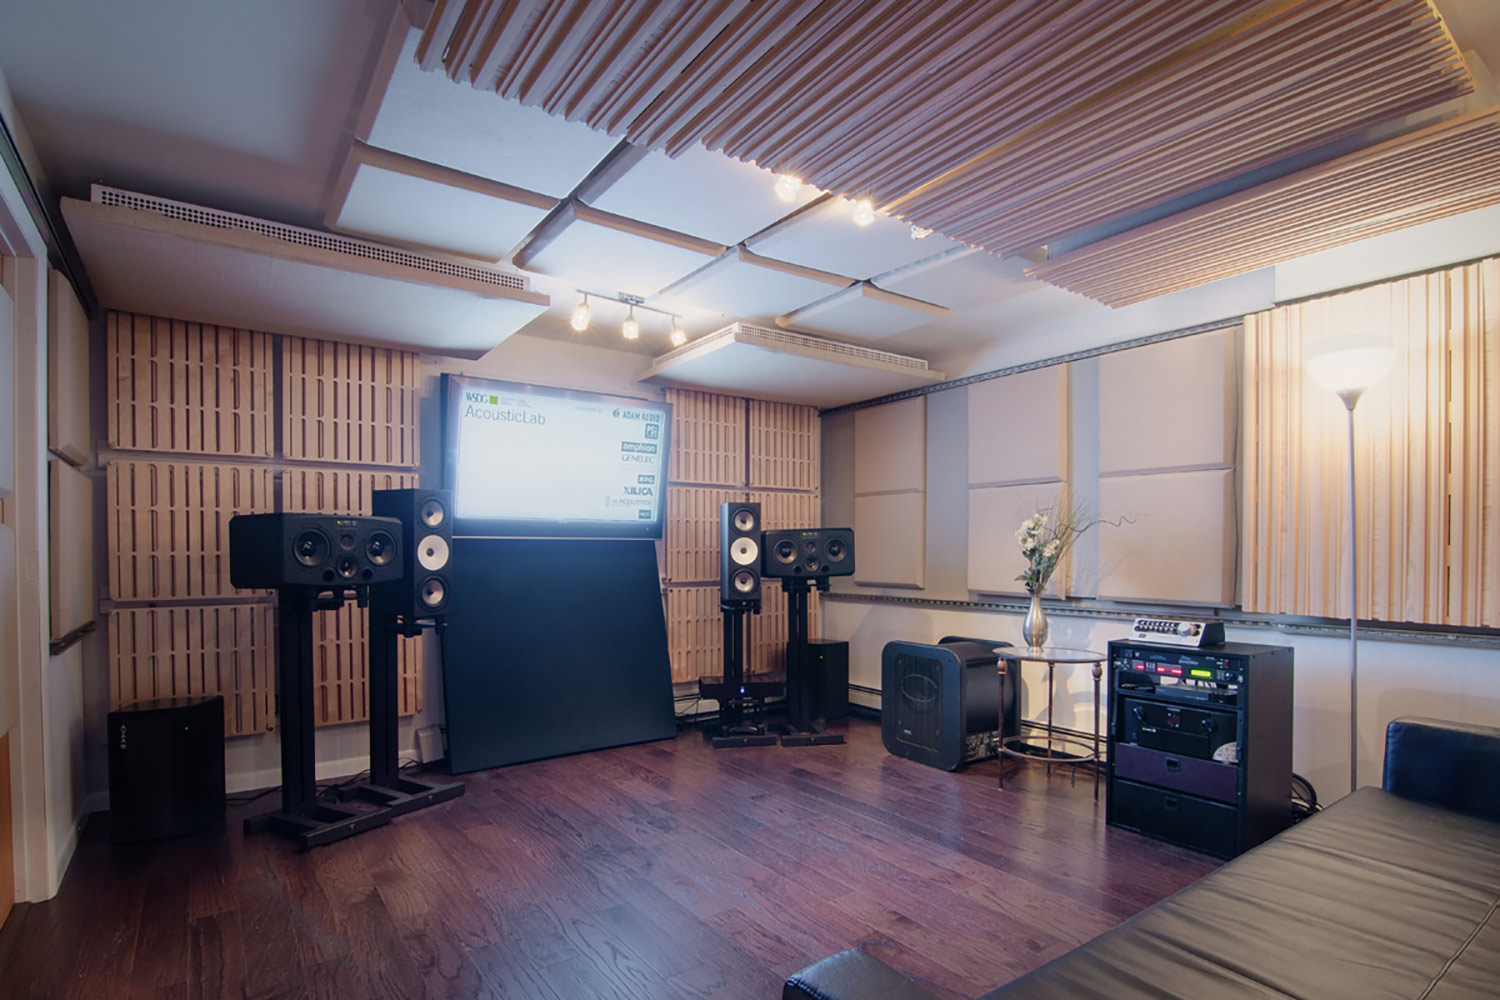 WSDG AcousticLab in Highland, NY. Space designed to accurately demonstrate and reproduce different spaces auralization. Front View.